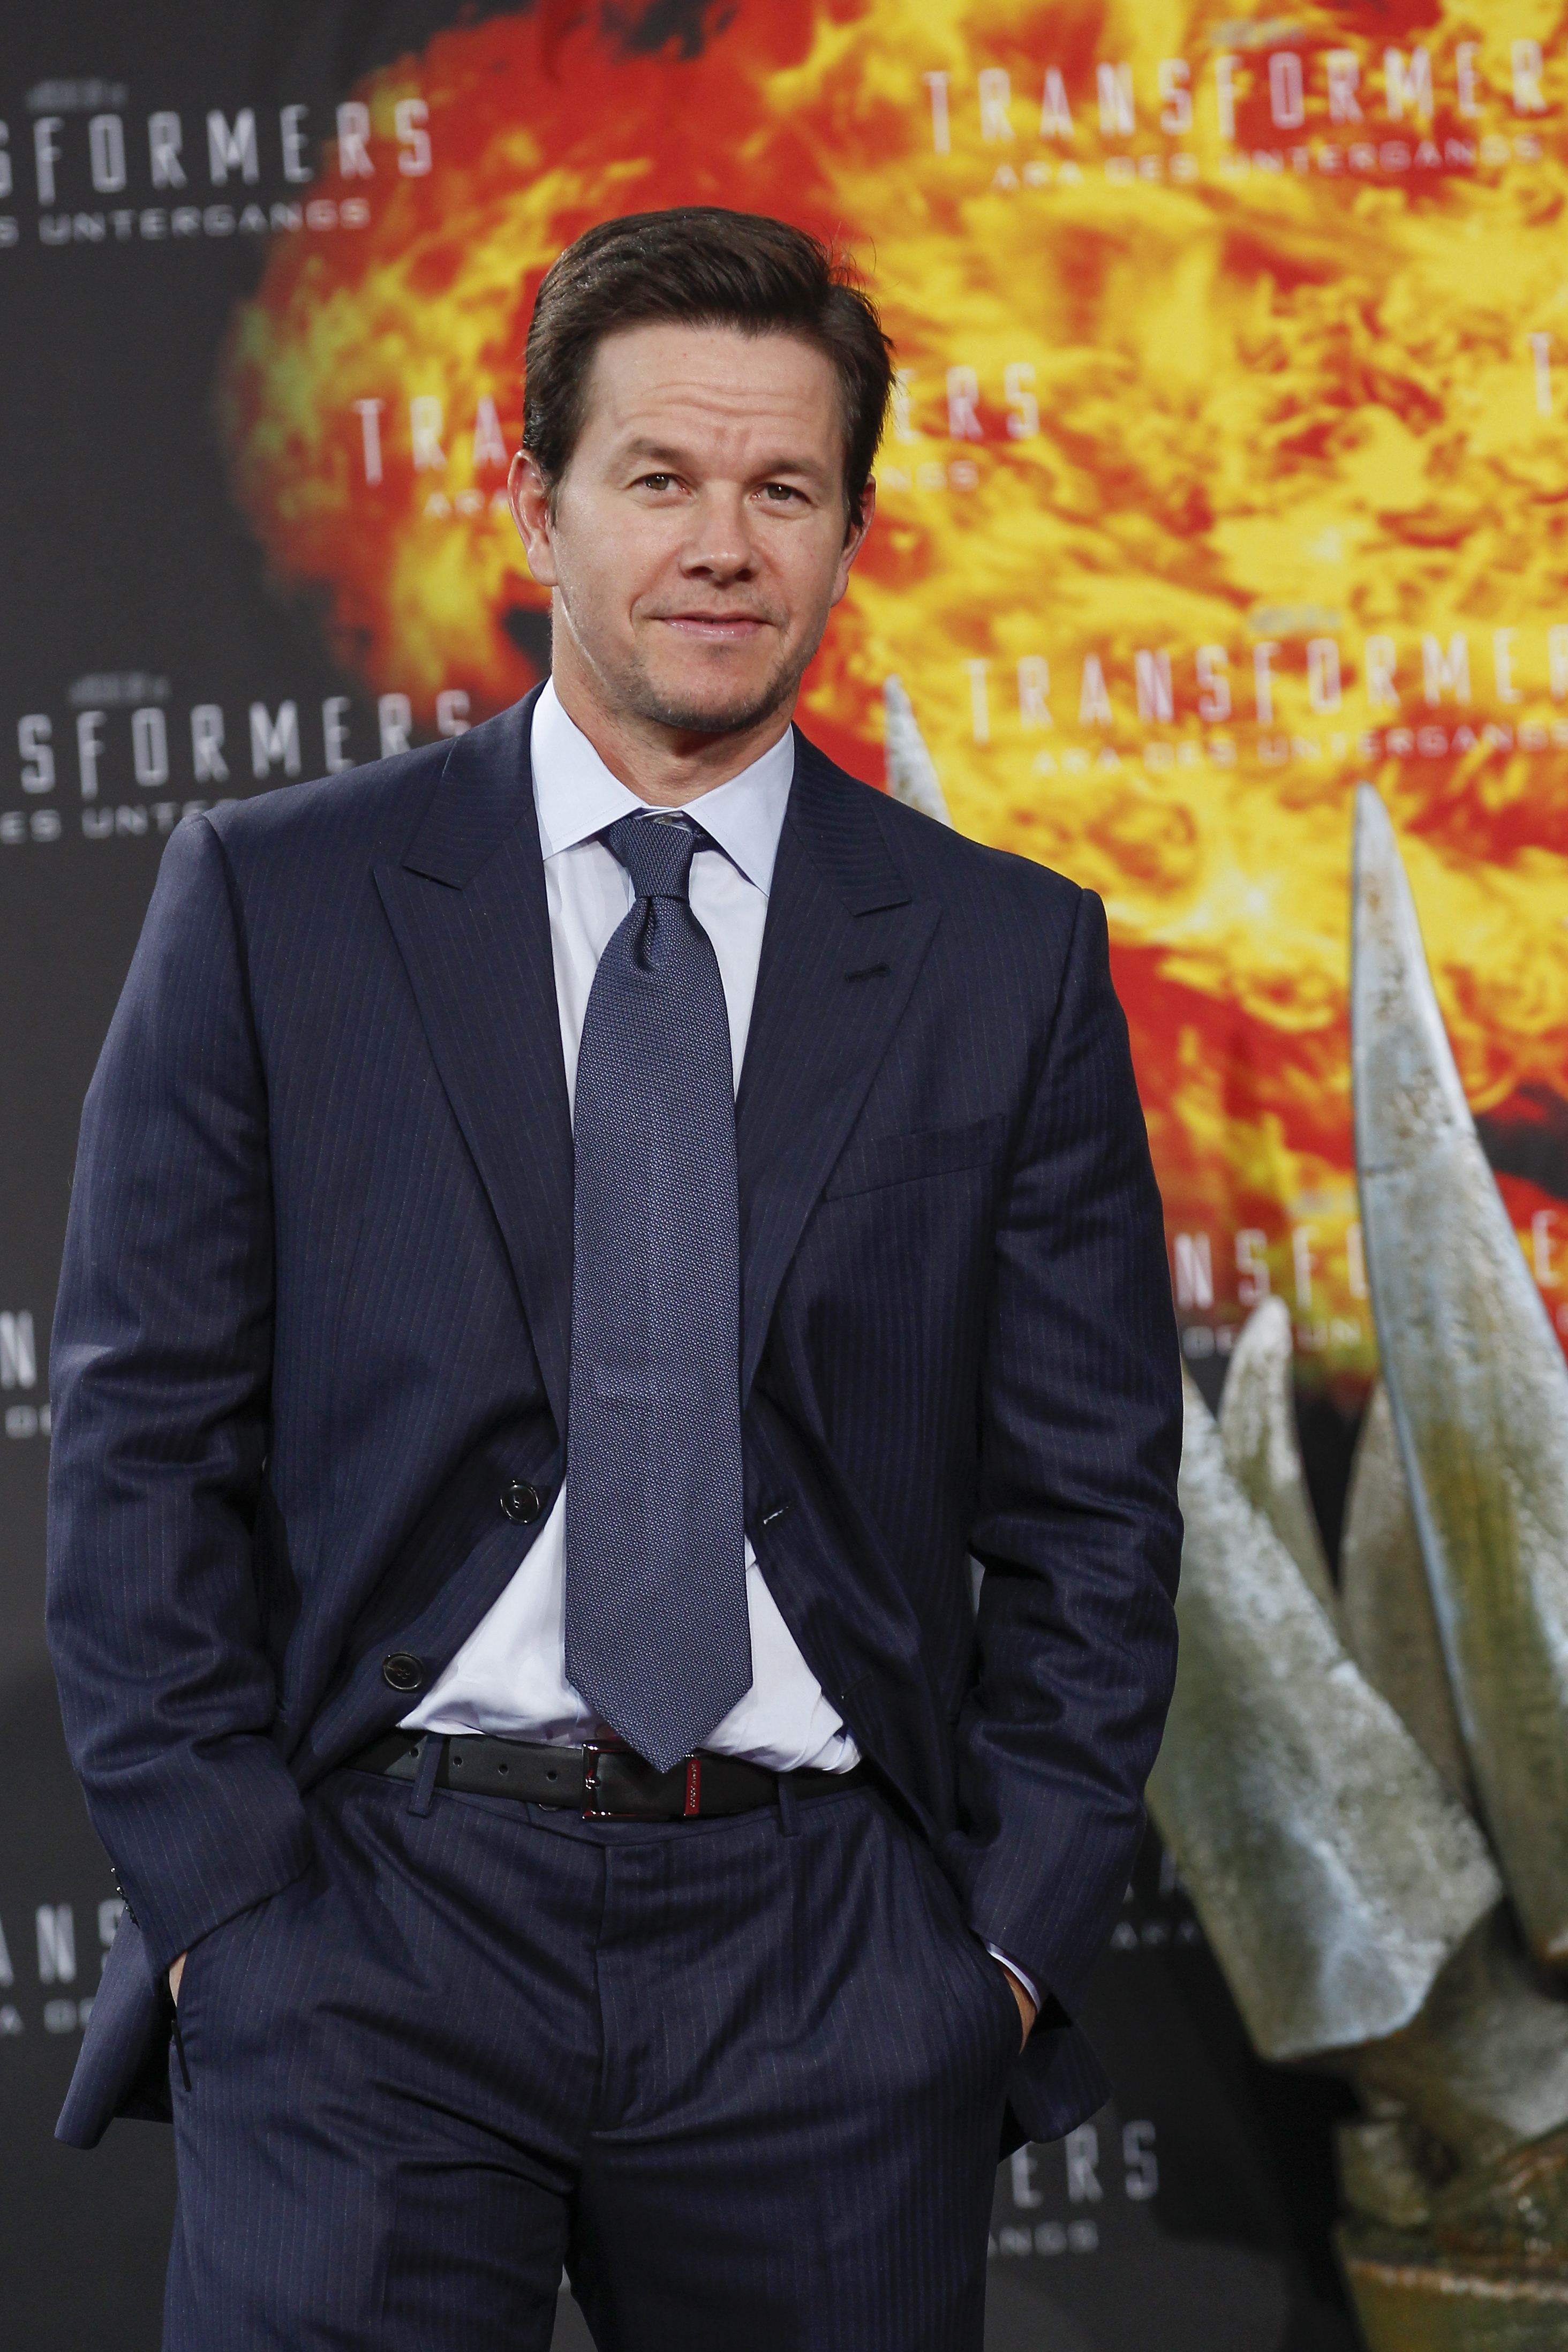 Mark Wahlberg attends the 'Transformers: Age of Extinction' Berlin Premiere on June 29, 2014 in Berlin, Germany.